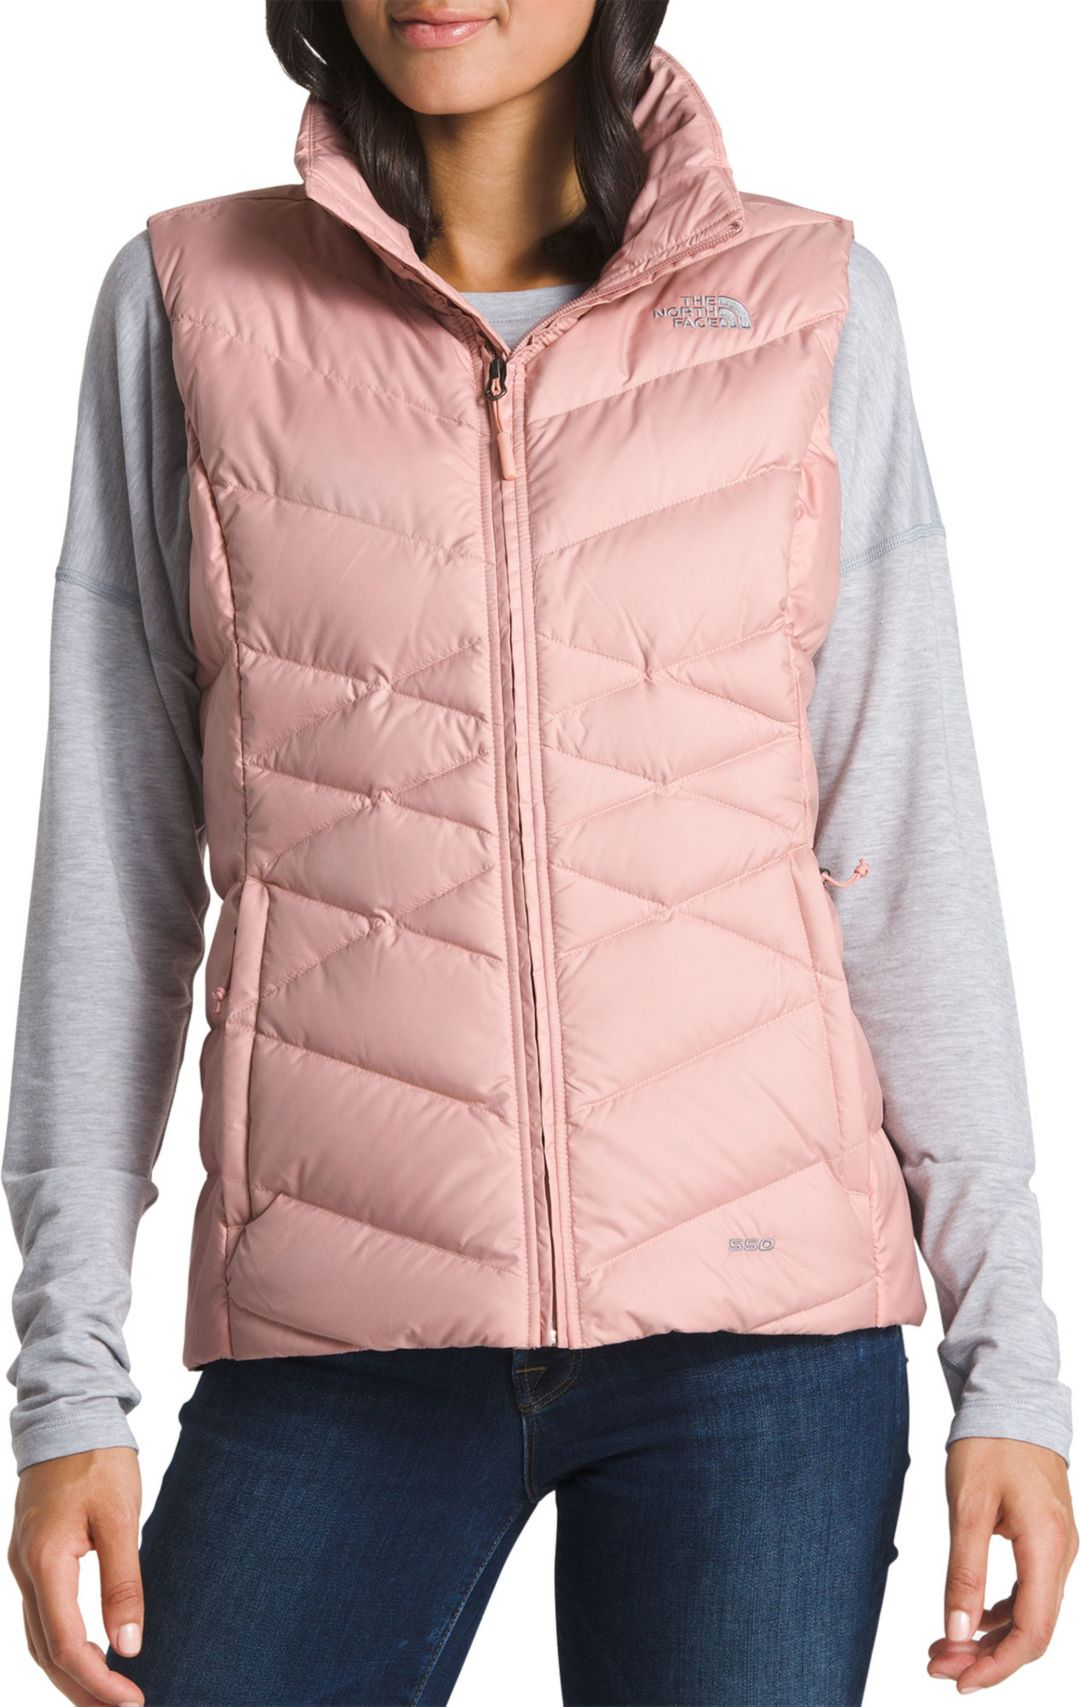 ce668e800 The North Face Women's Alpz Down Vest